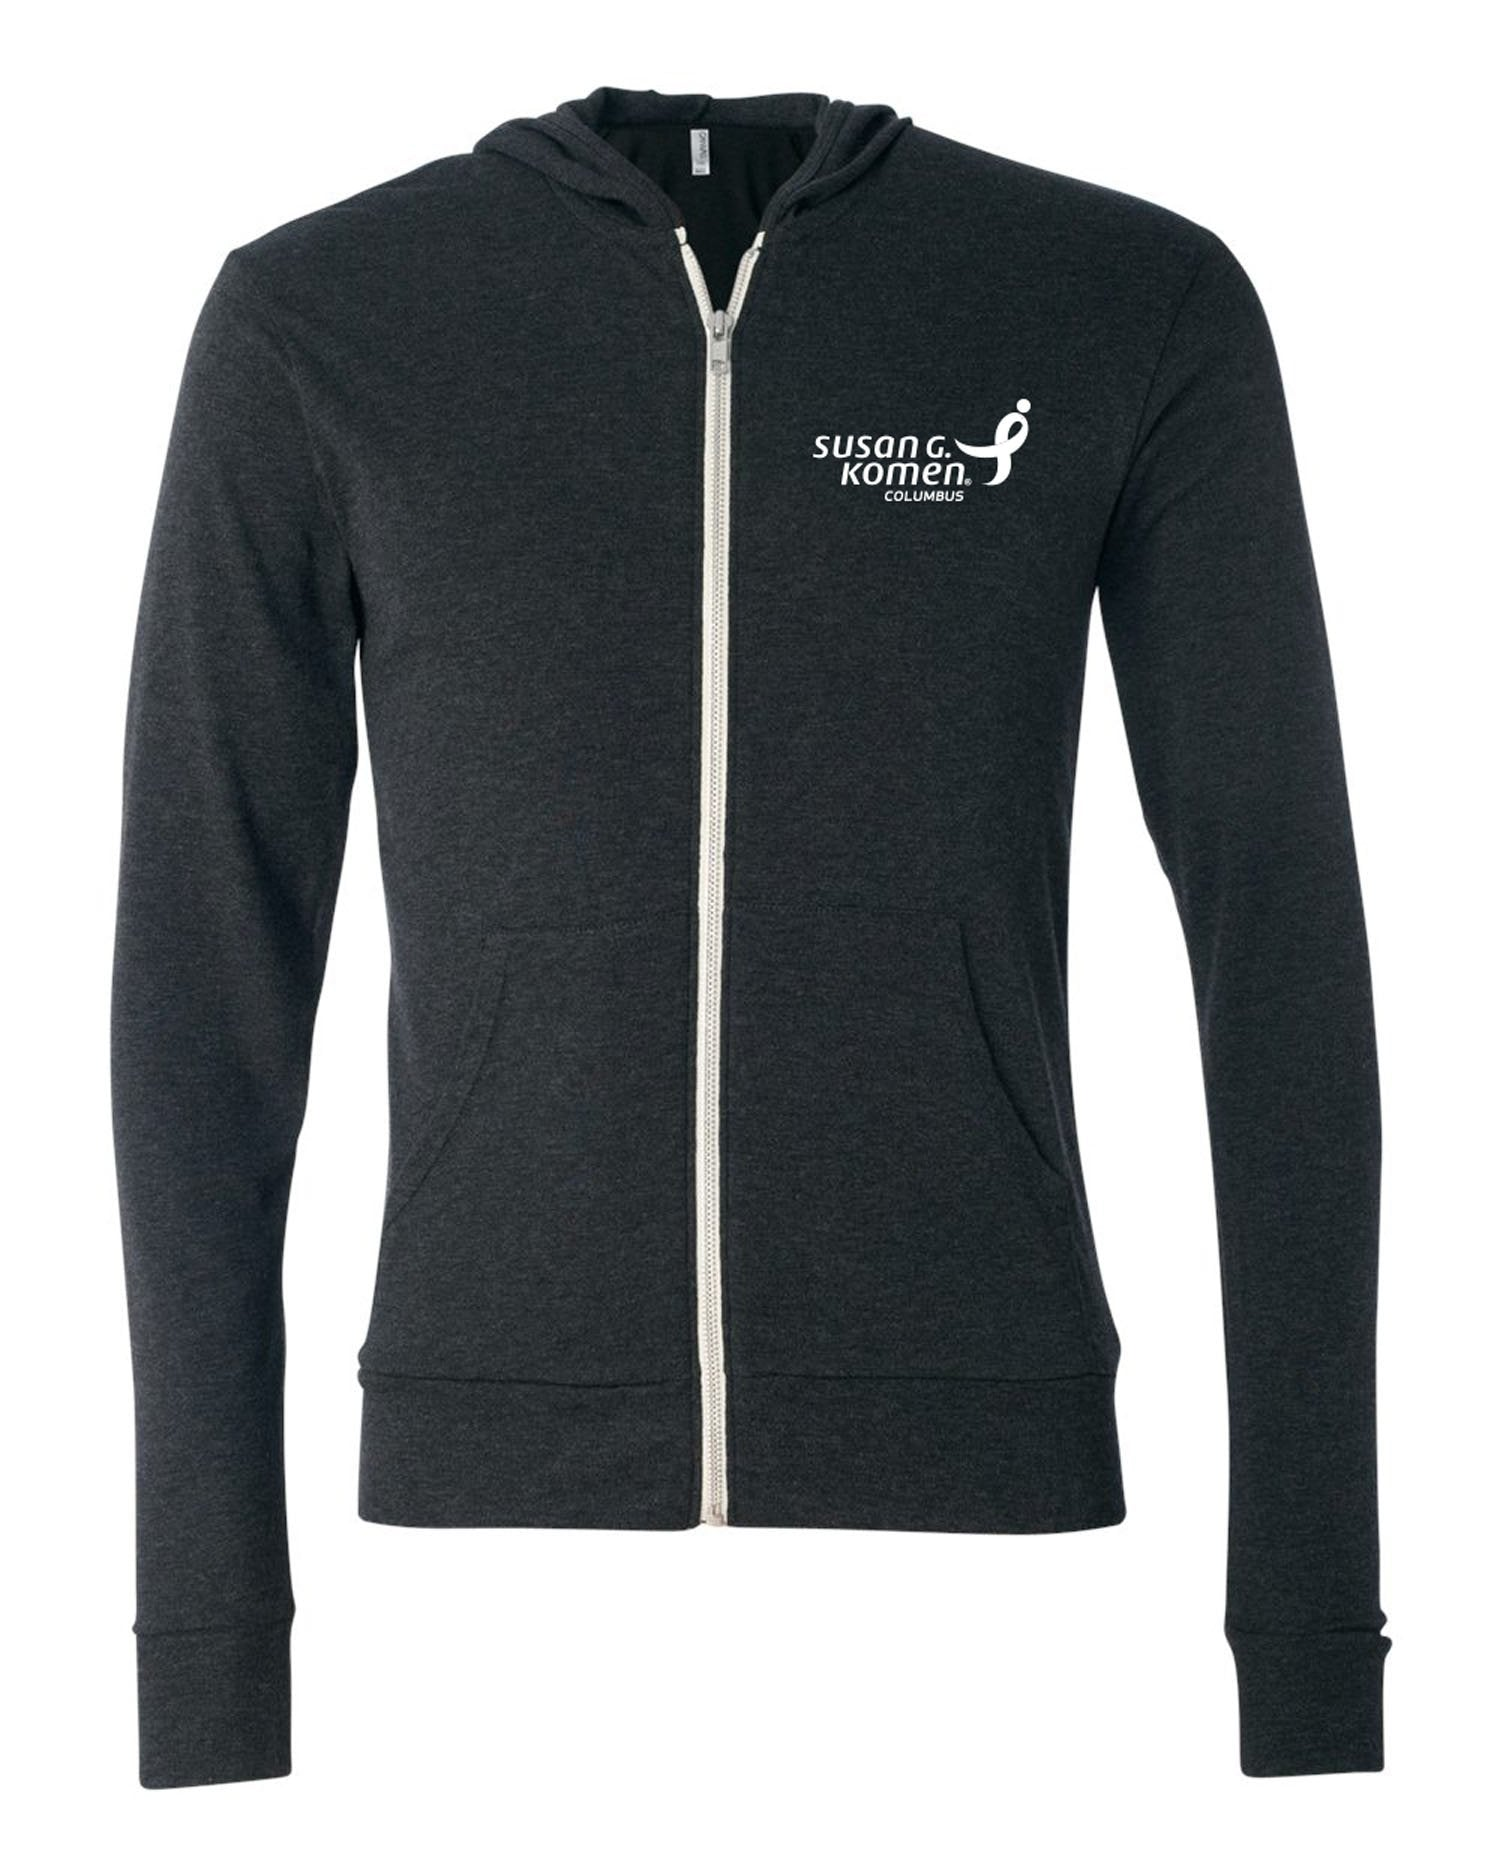 Lightweight Hooded Full-Zip, Susan G. Komen Logo